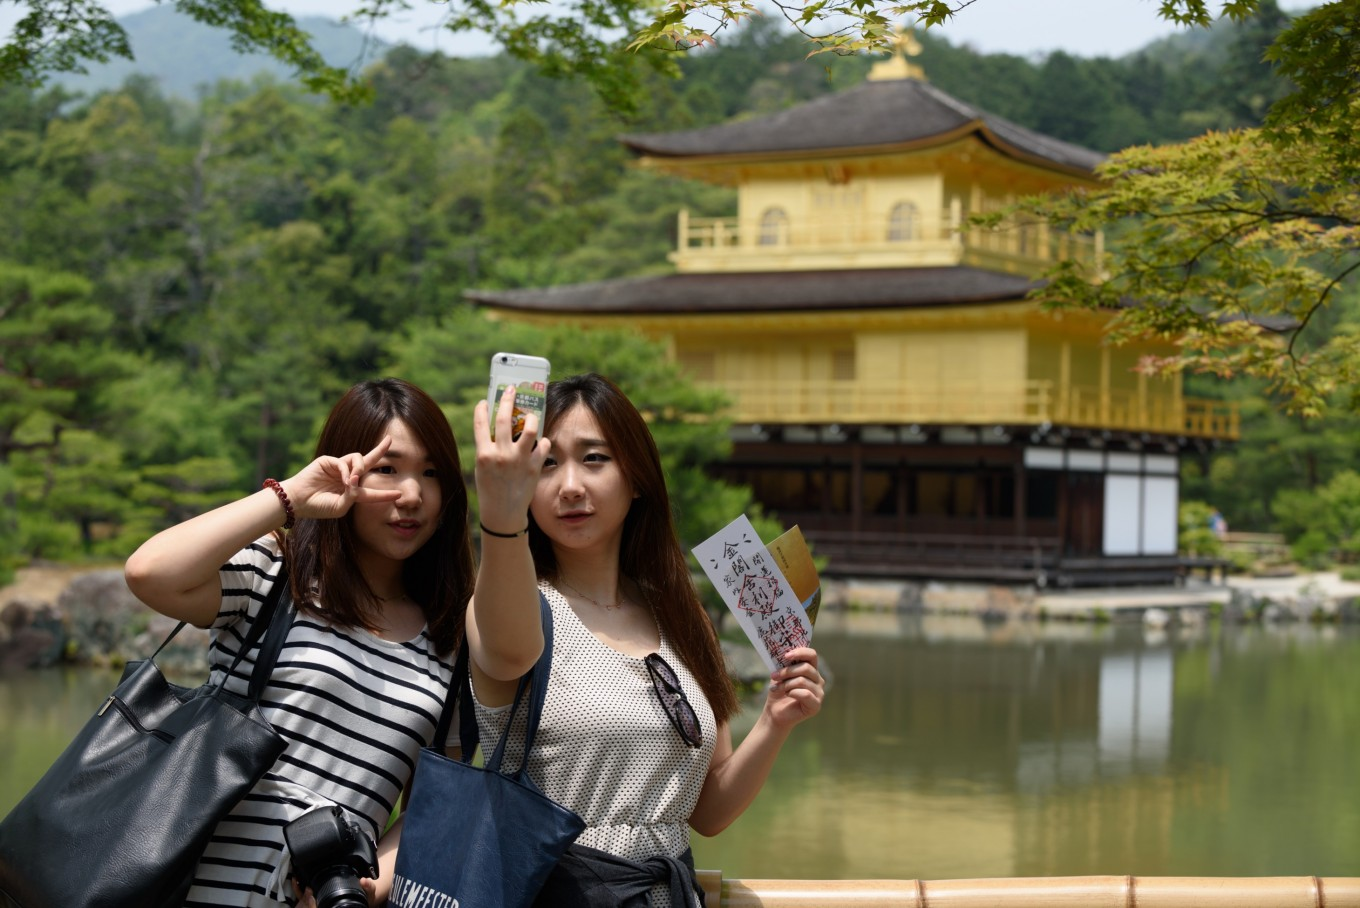 Kyoto aiming to disperse crowds amid fears of 'overtourism'